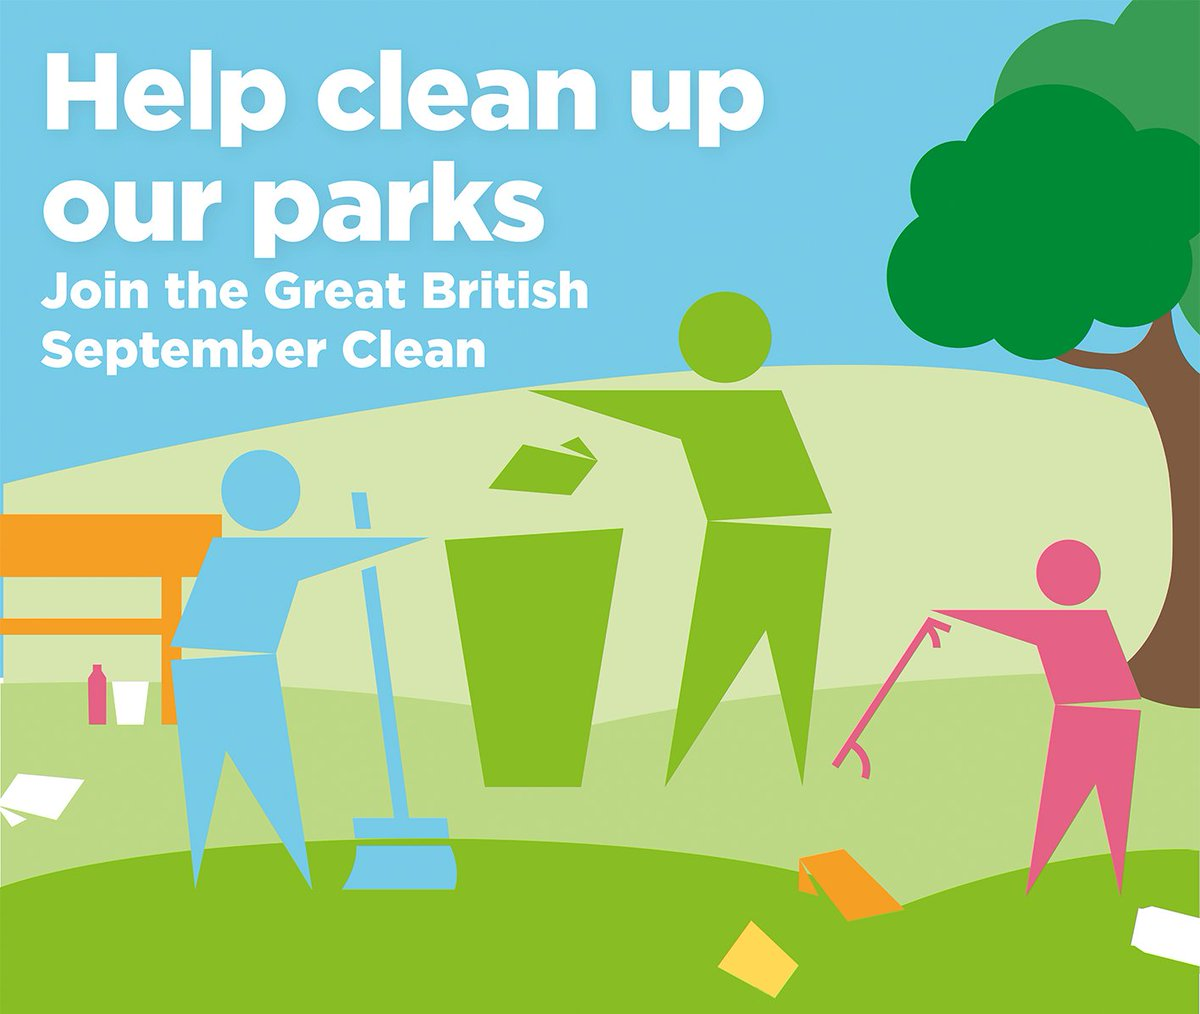 It's not too late to be a part of the Great British September Clean. Litter picking is a great way for individuals or households to spend some time outdoors and help clear up their local community. Find out more: https://t.co/cTkie30pXd #GBSeptemberClean #LoveParks #LitterHeroes https://t.co/R1tSuOD9nU